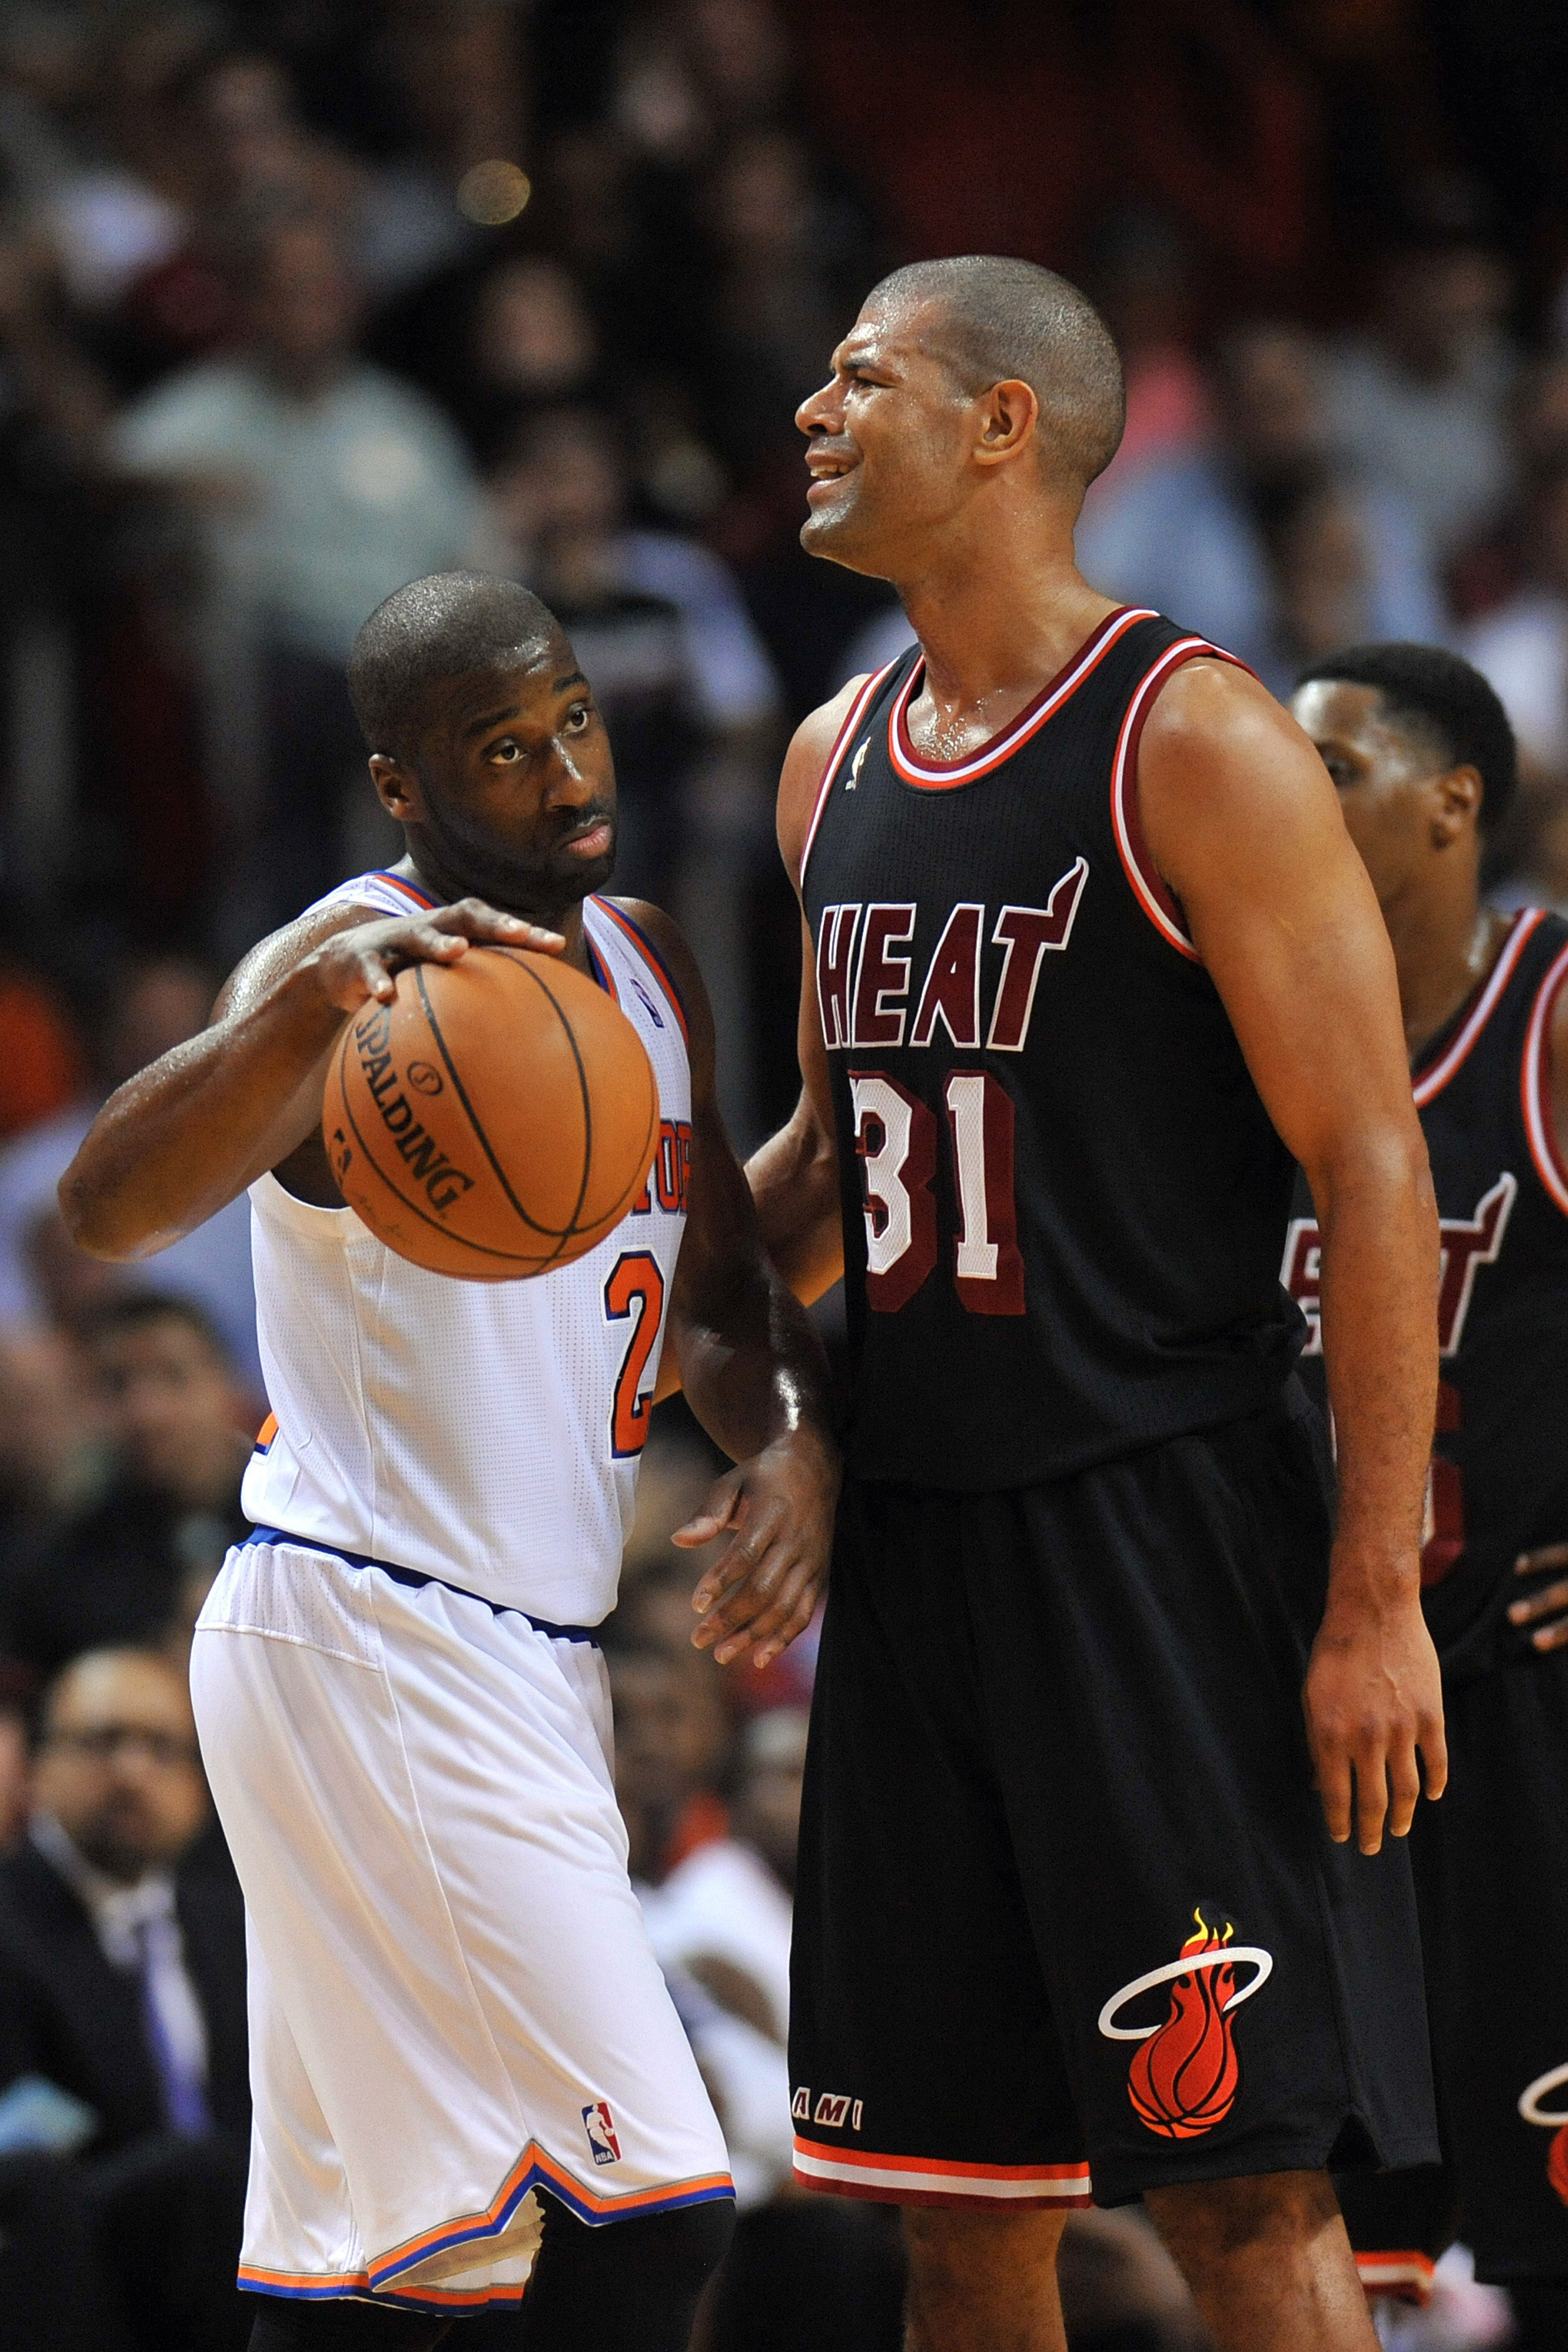 NBA schedule: Knicks meet Heat in potential playoff preview